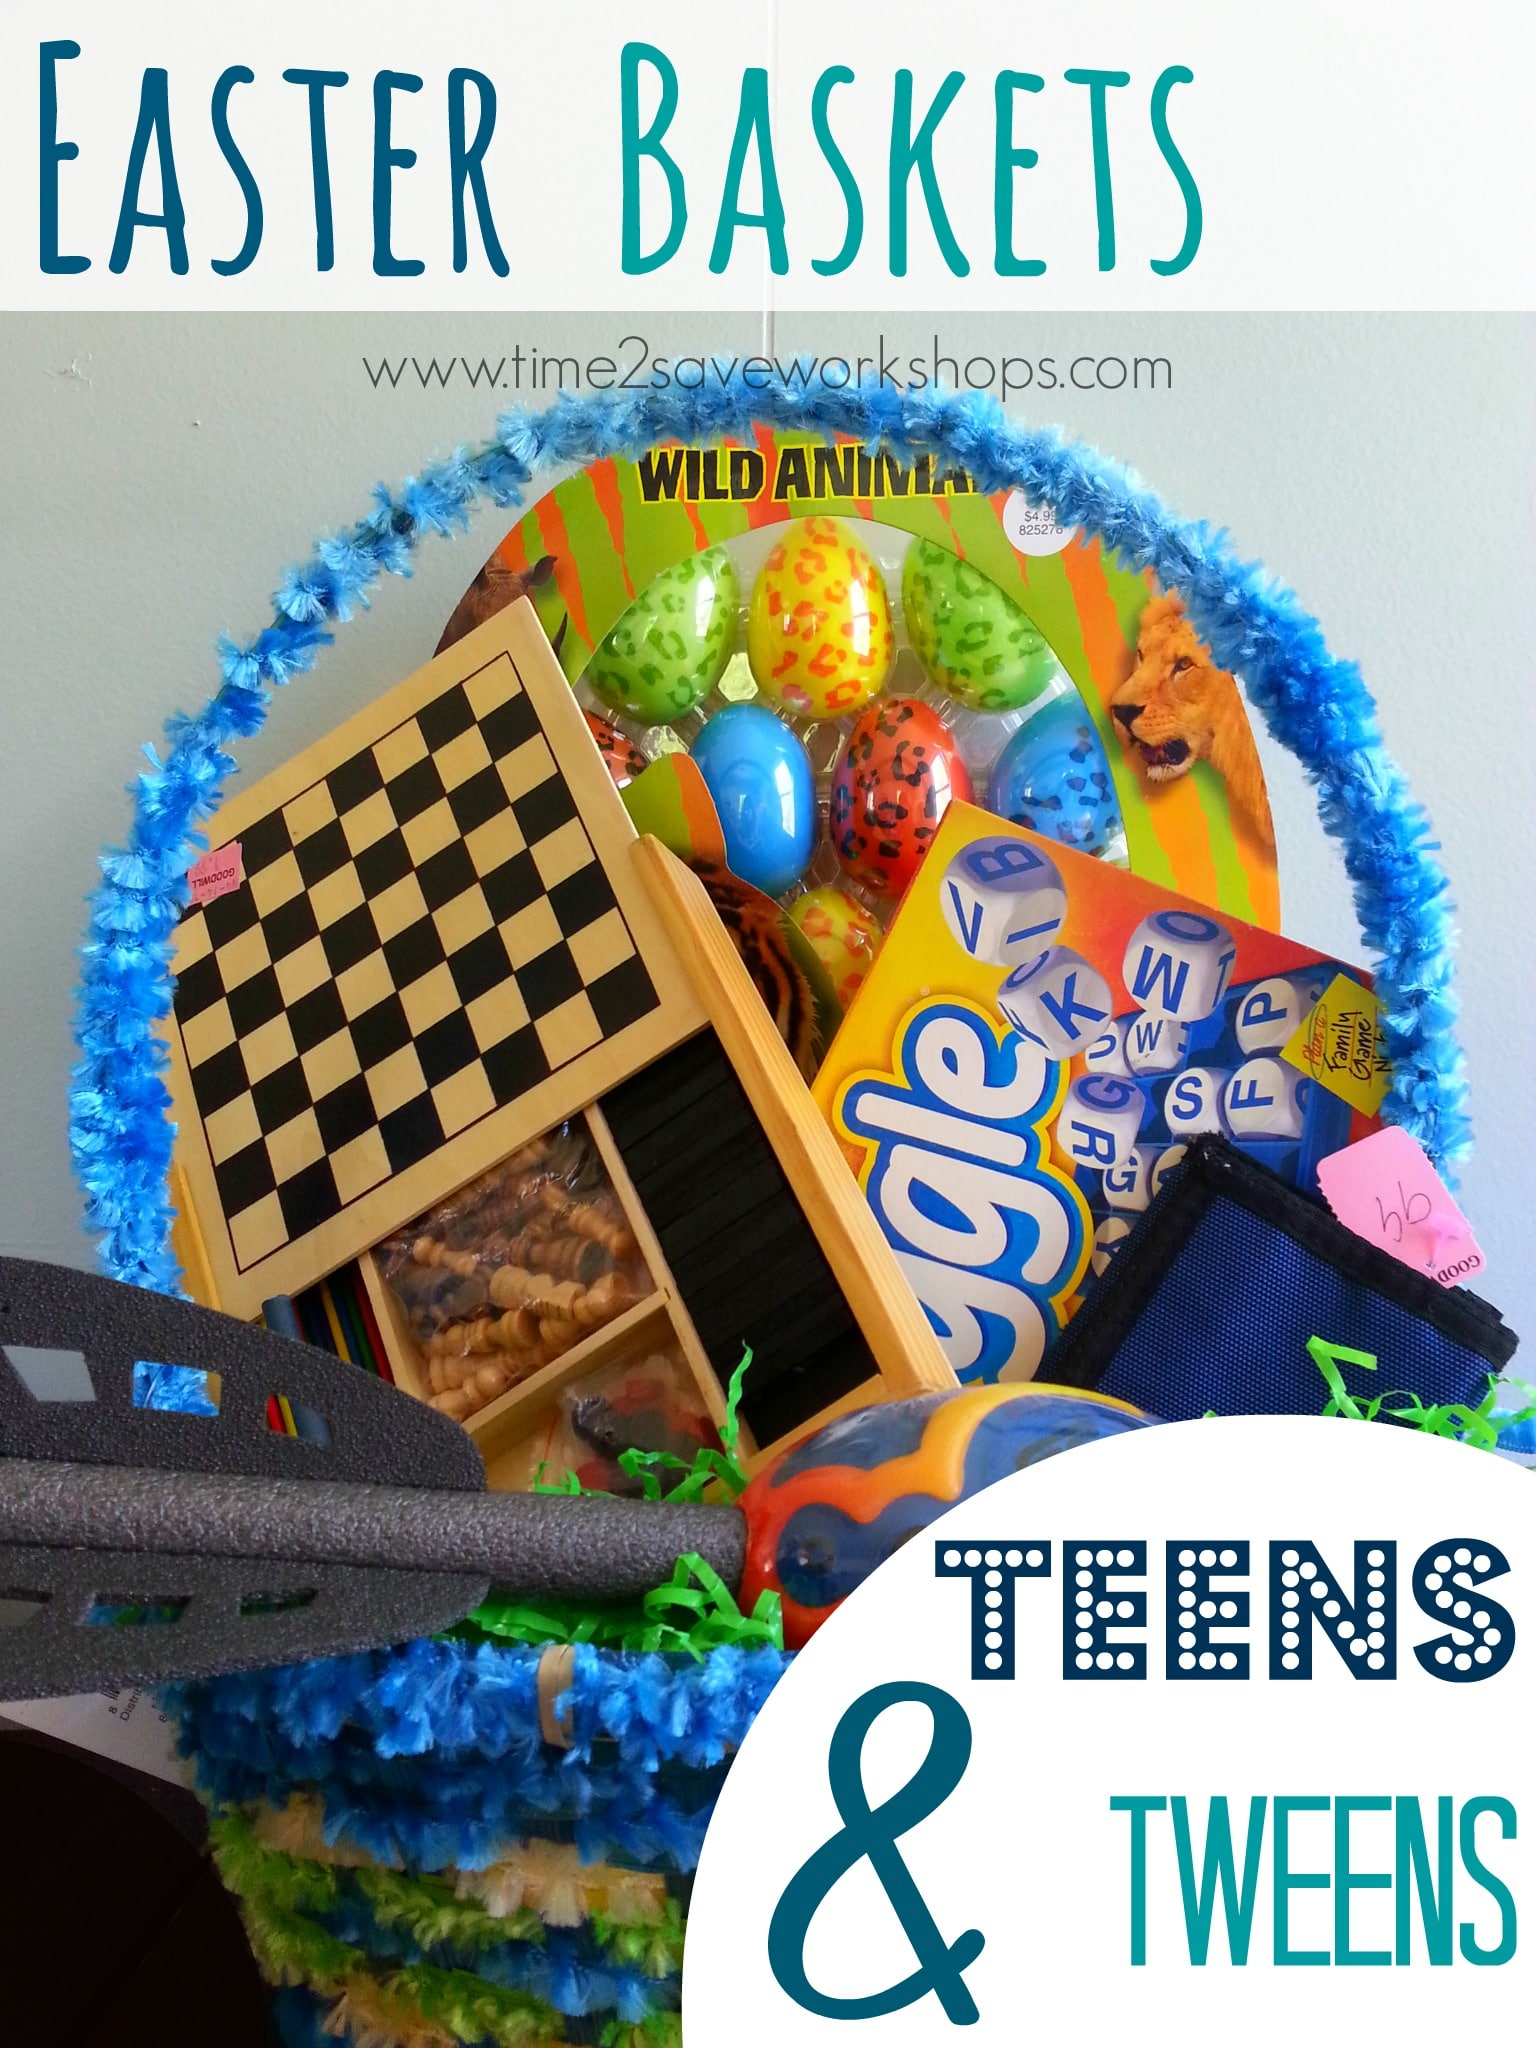 Easter baskets for teens tweens 6 frugal ideas kasey trenum easter baskets for teens tweens 6 frugal ideas negle Image collections